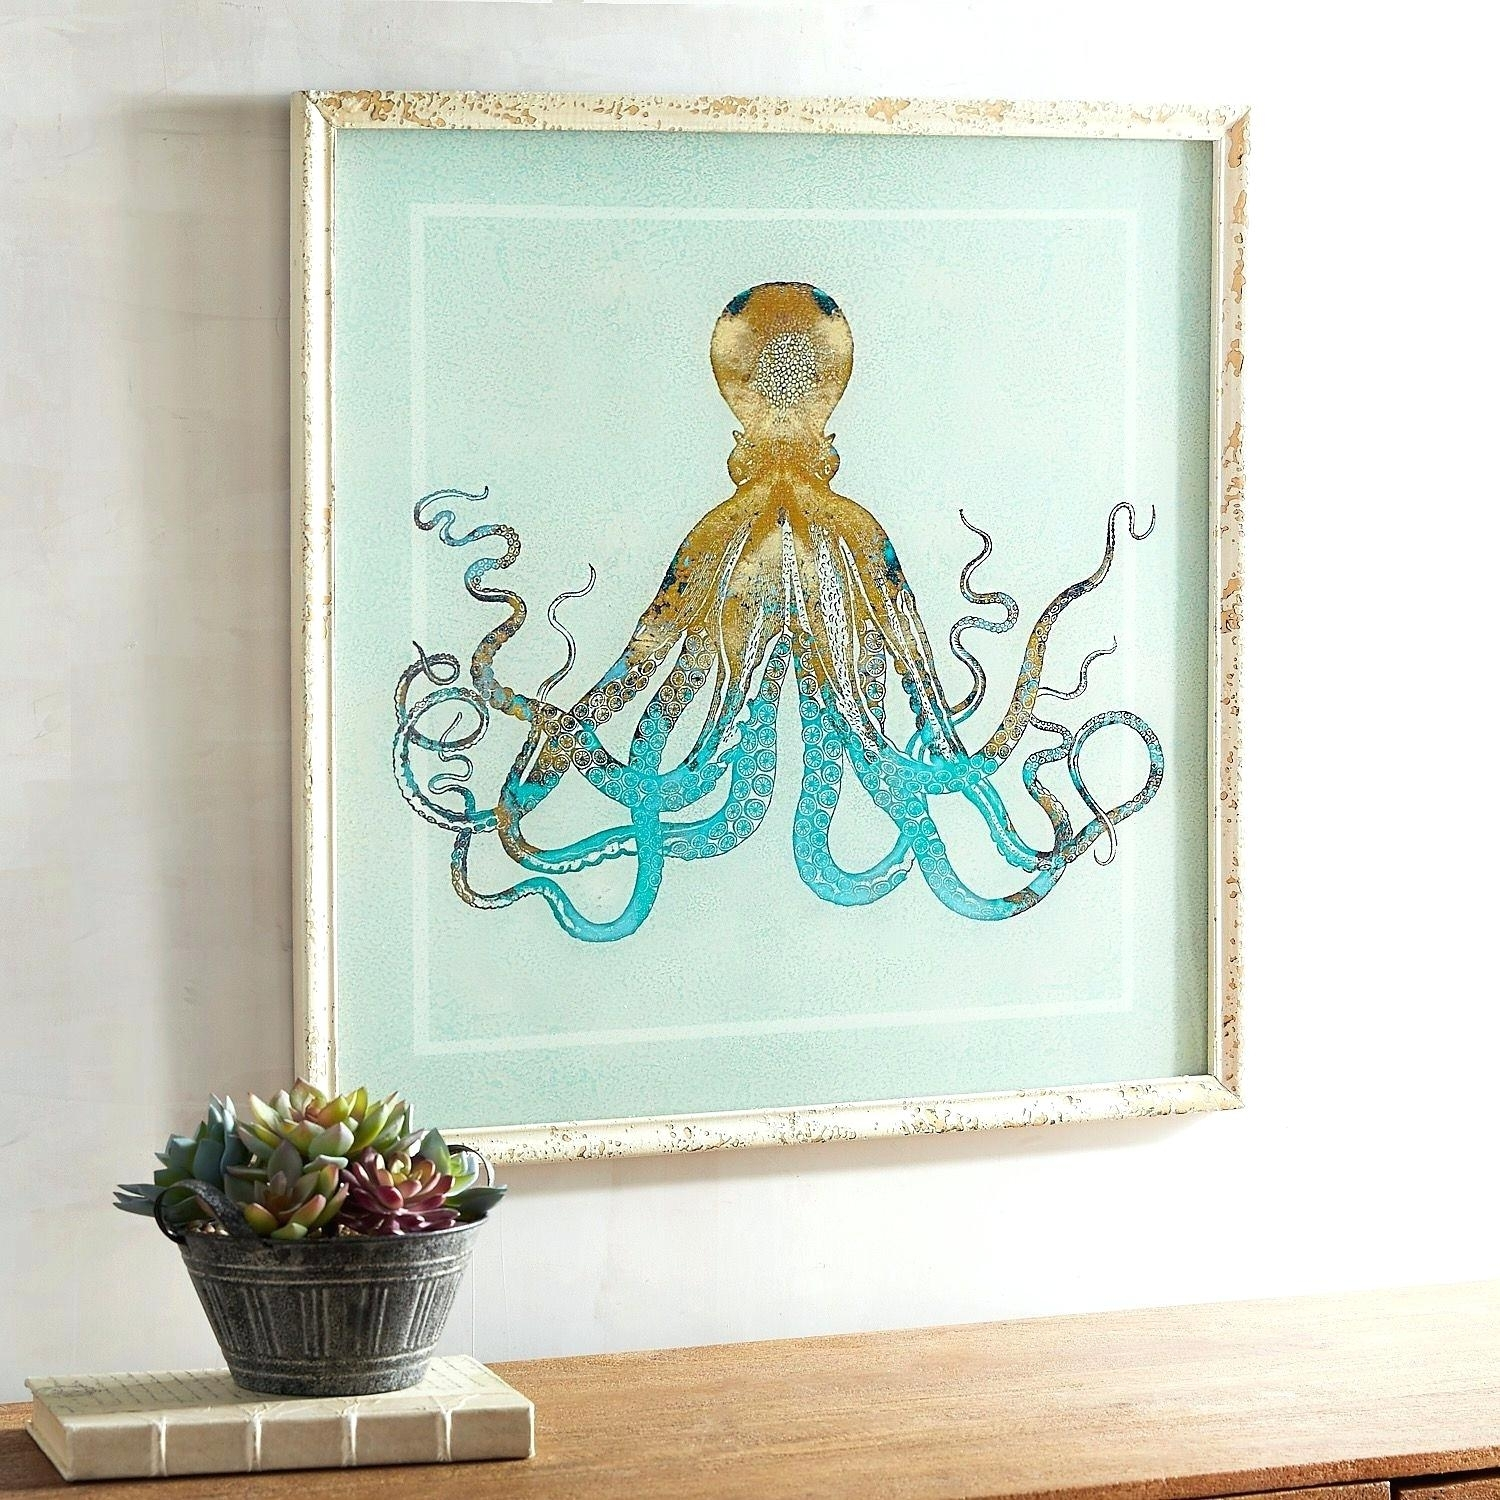 Octopus Wall Art Bathroom Blue Splash Octopus Wall Art Octopus Art Intended For Most Current Octopus Wall Art (View 16 of 20)